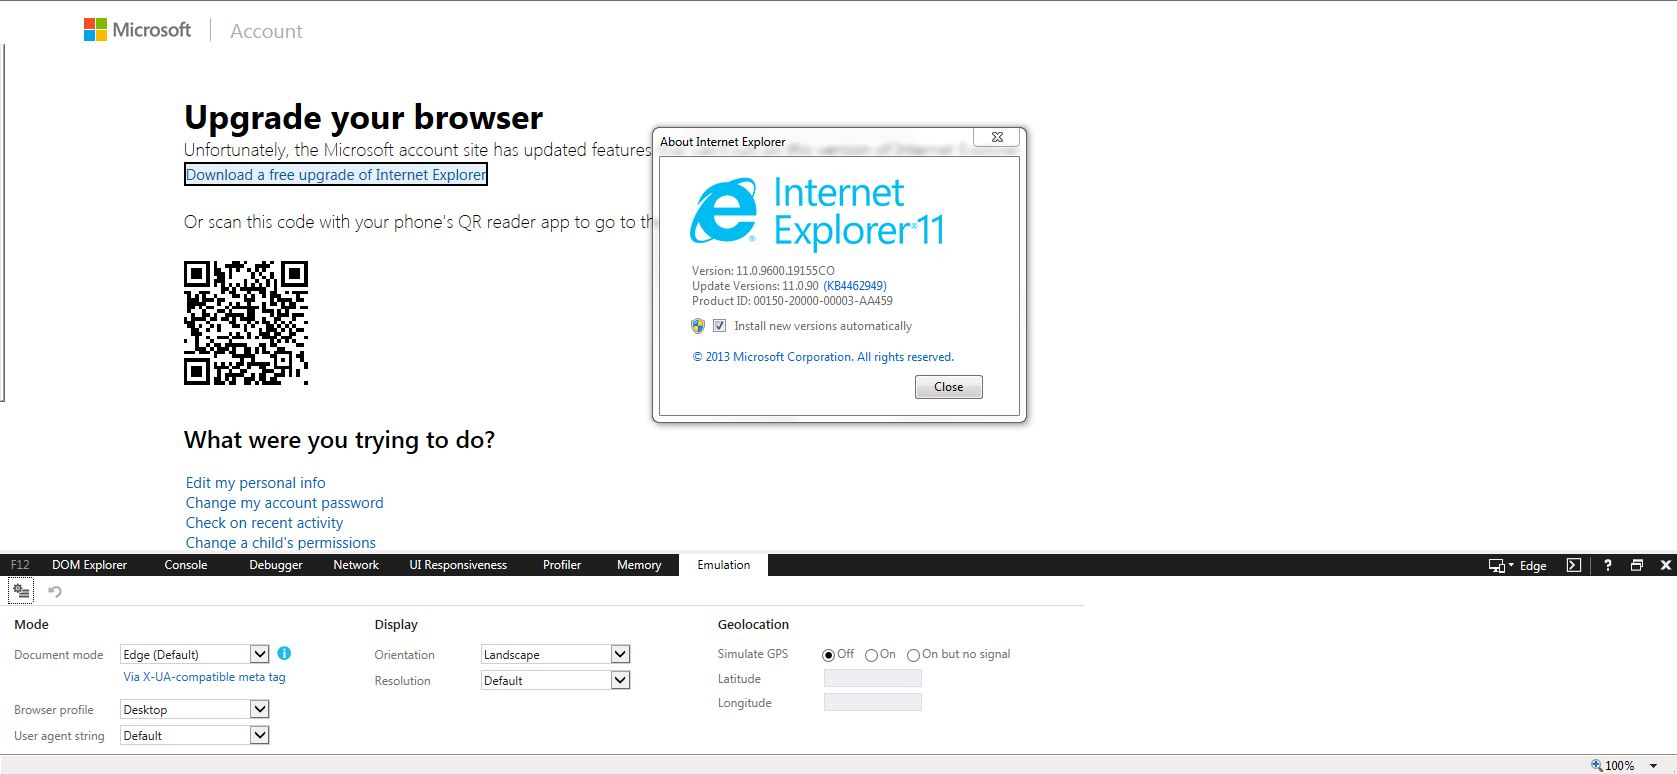 Internet Explorer 11 for Windows 7 - your browser is out of